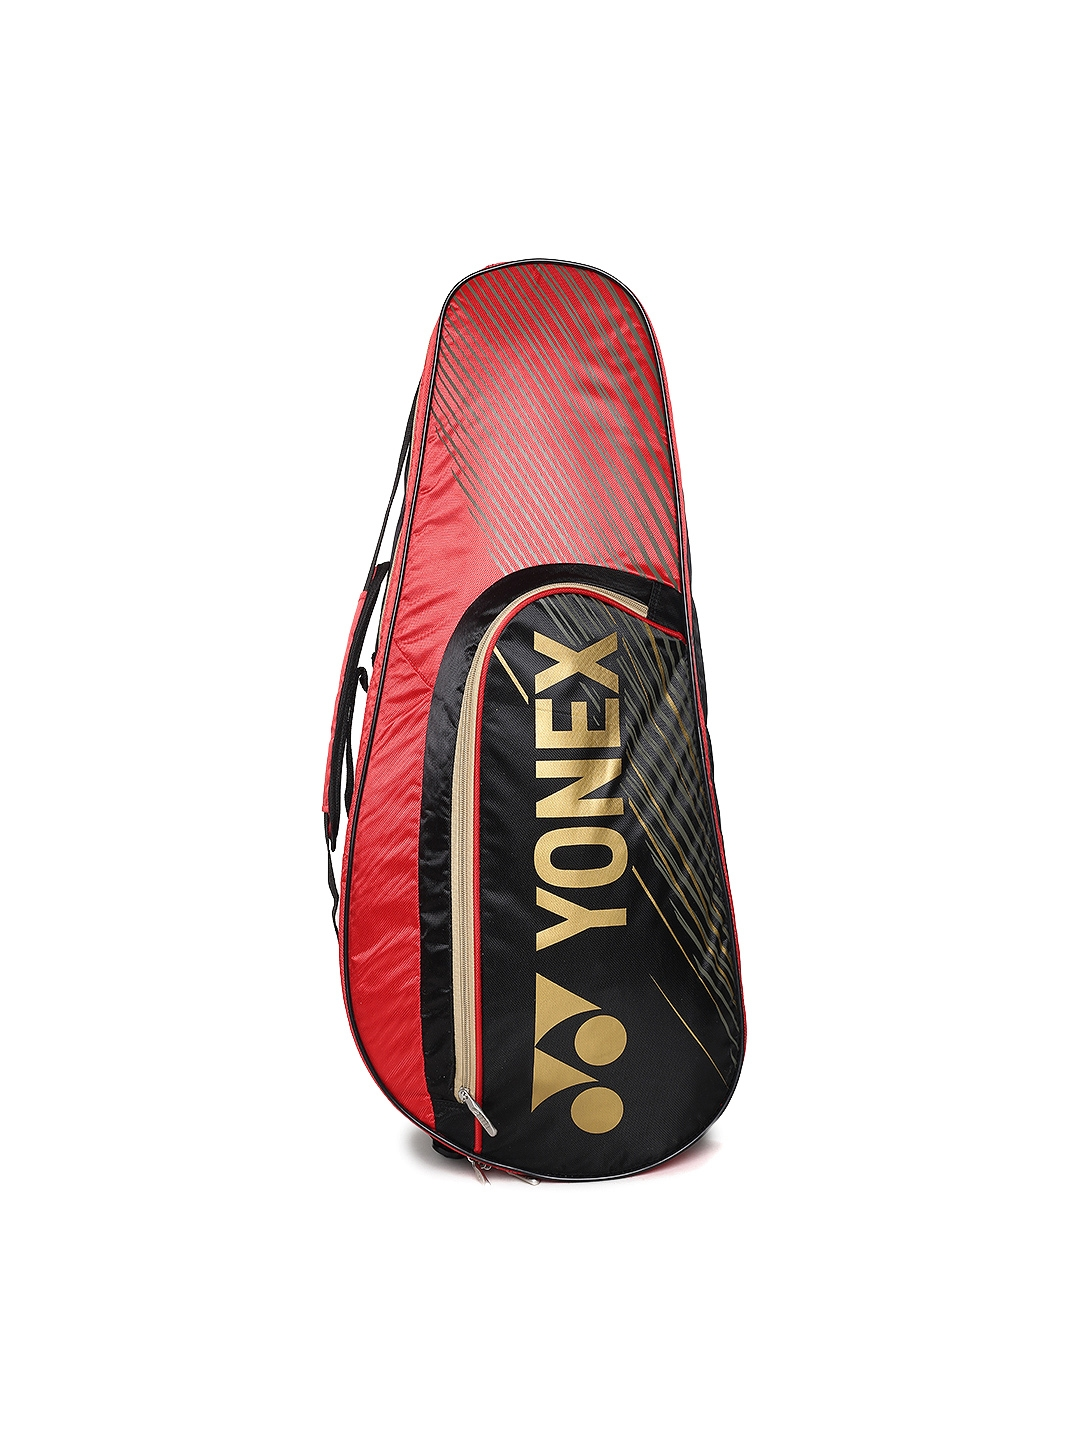 Yonex Unisex Red   Black Printed Badminton Kit Bag SUNR 4726TG BT6